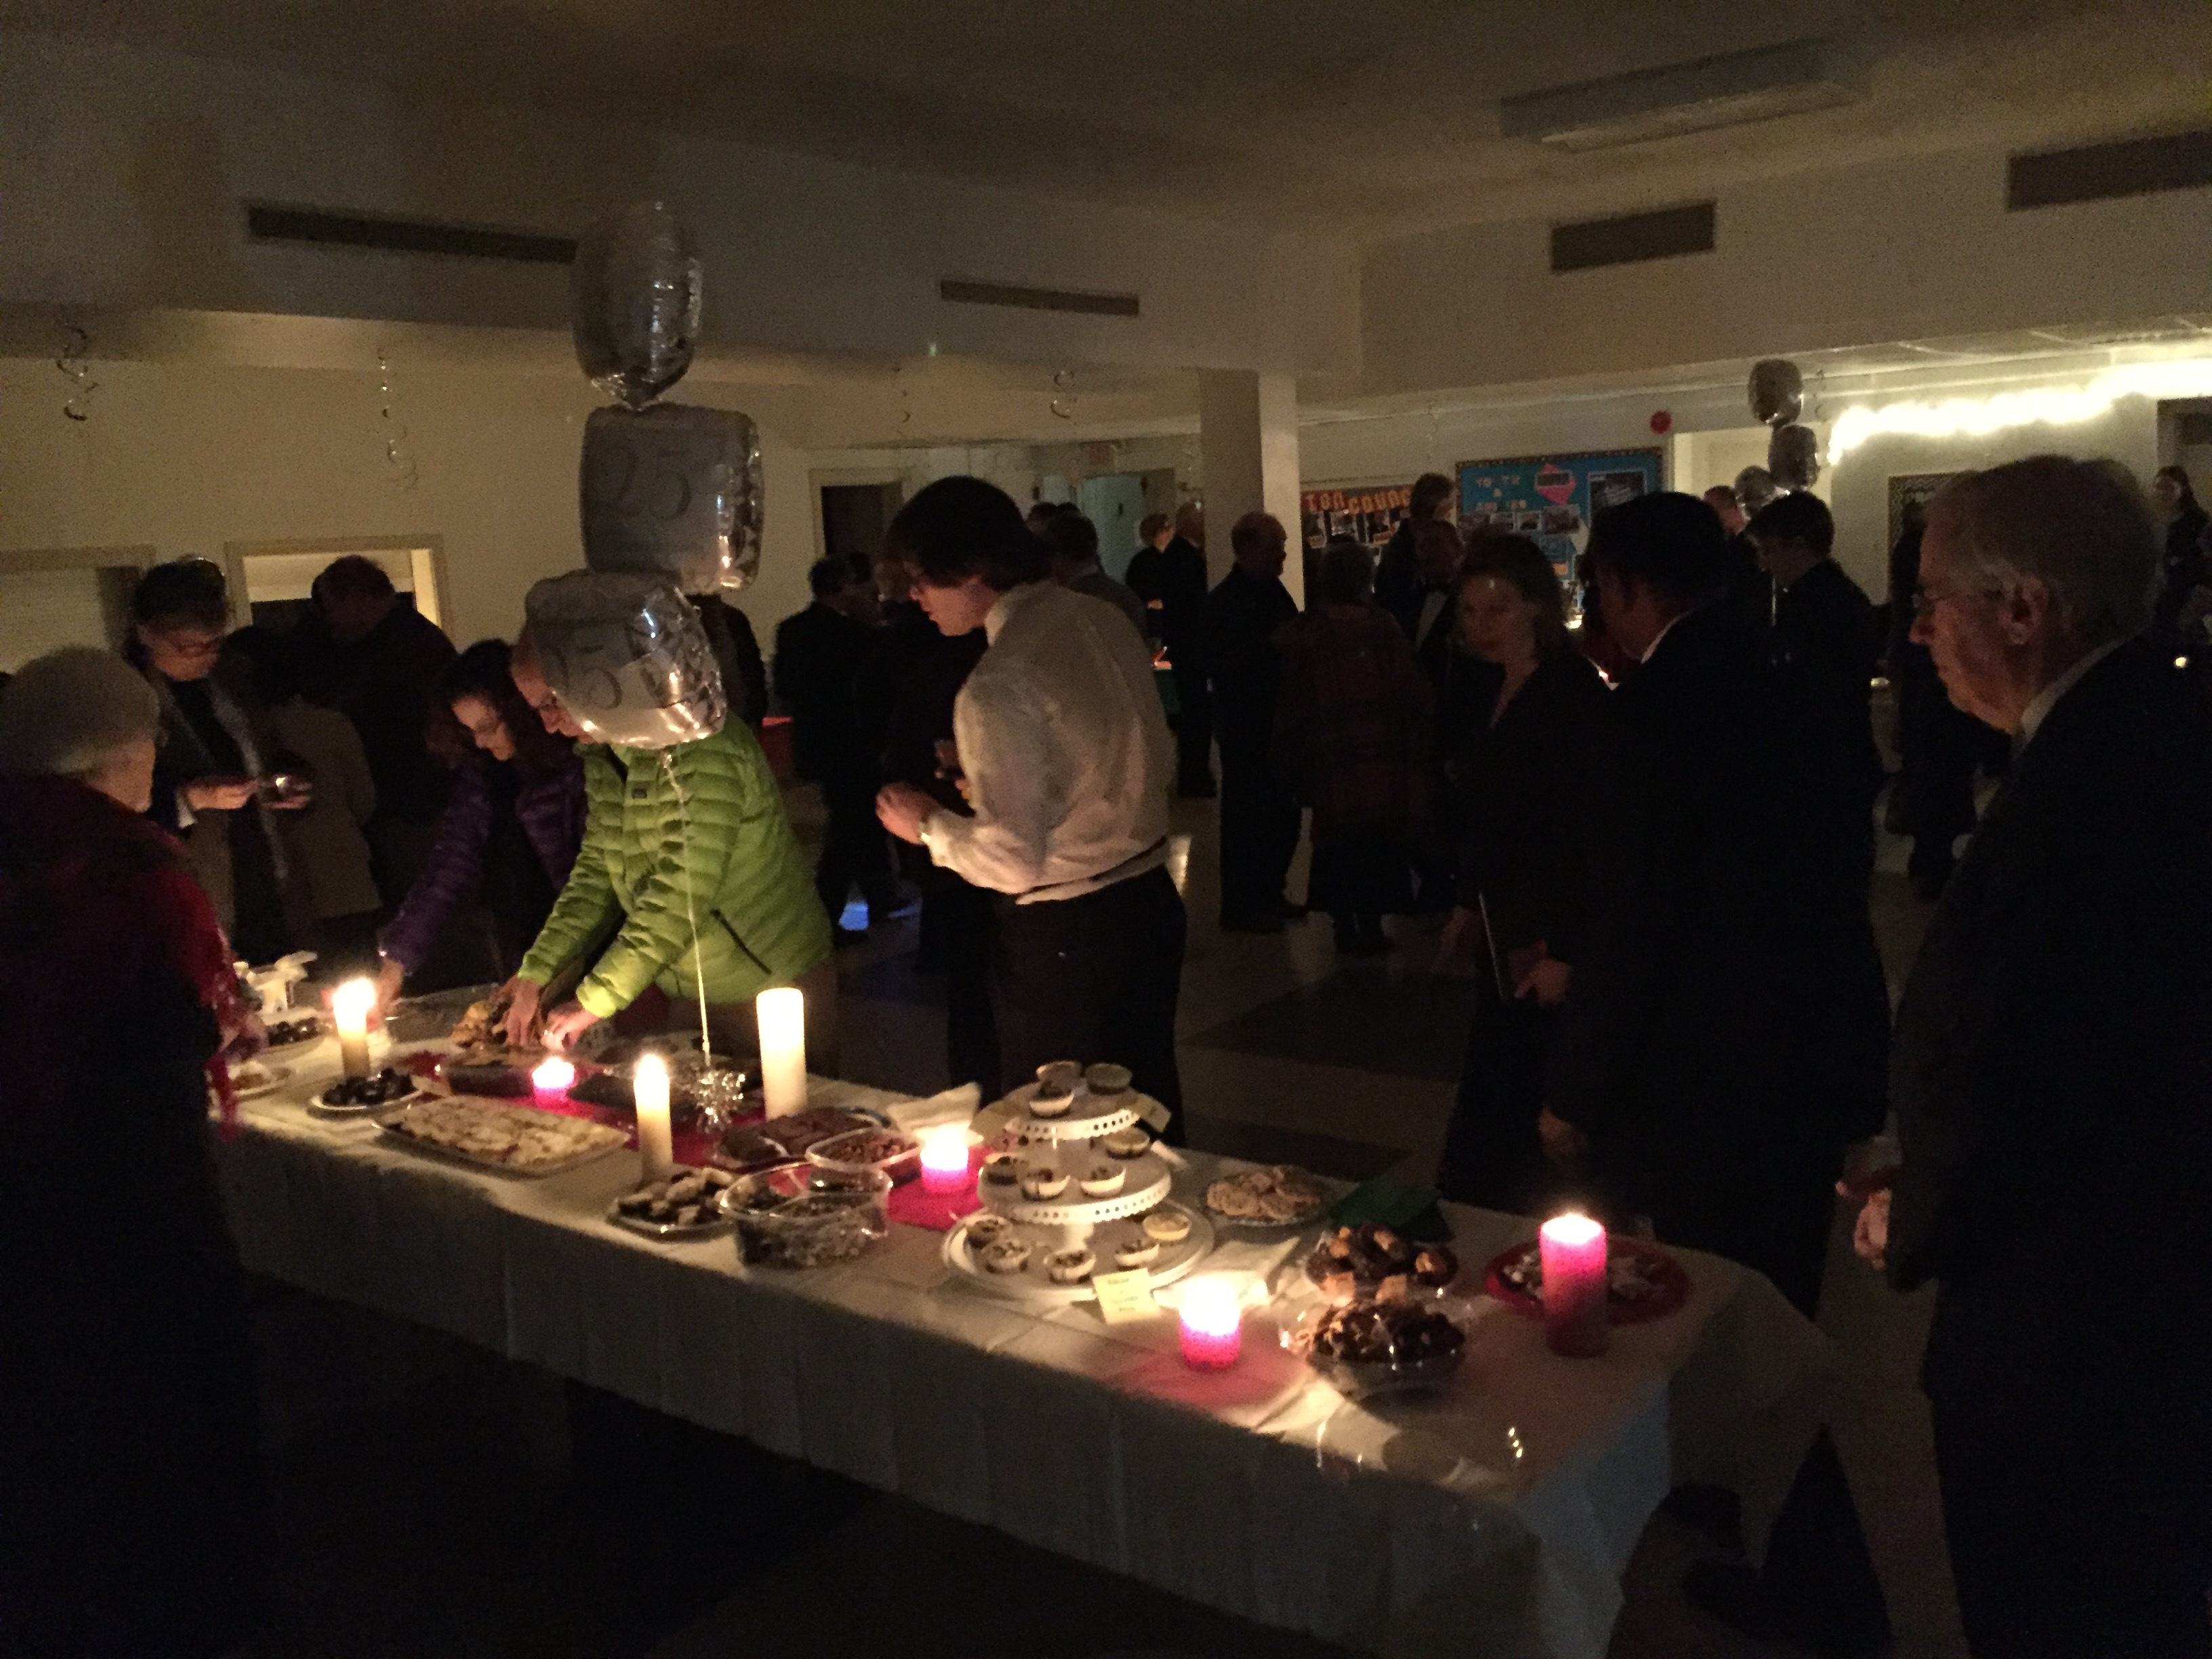 Candlelight reception